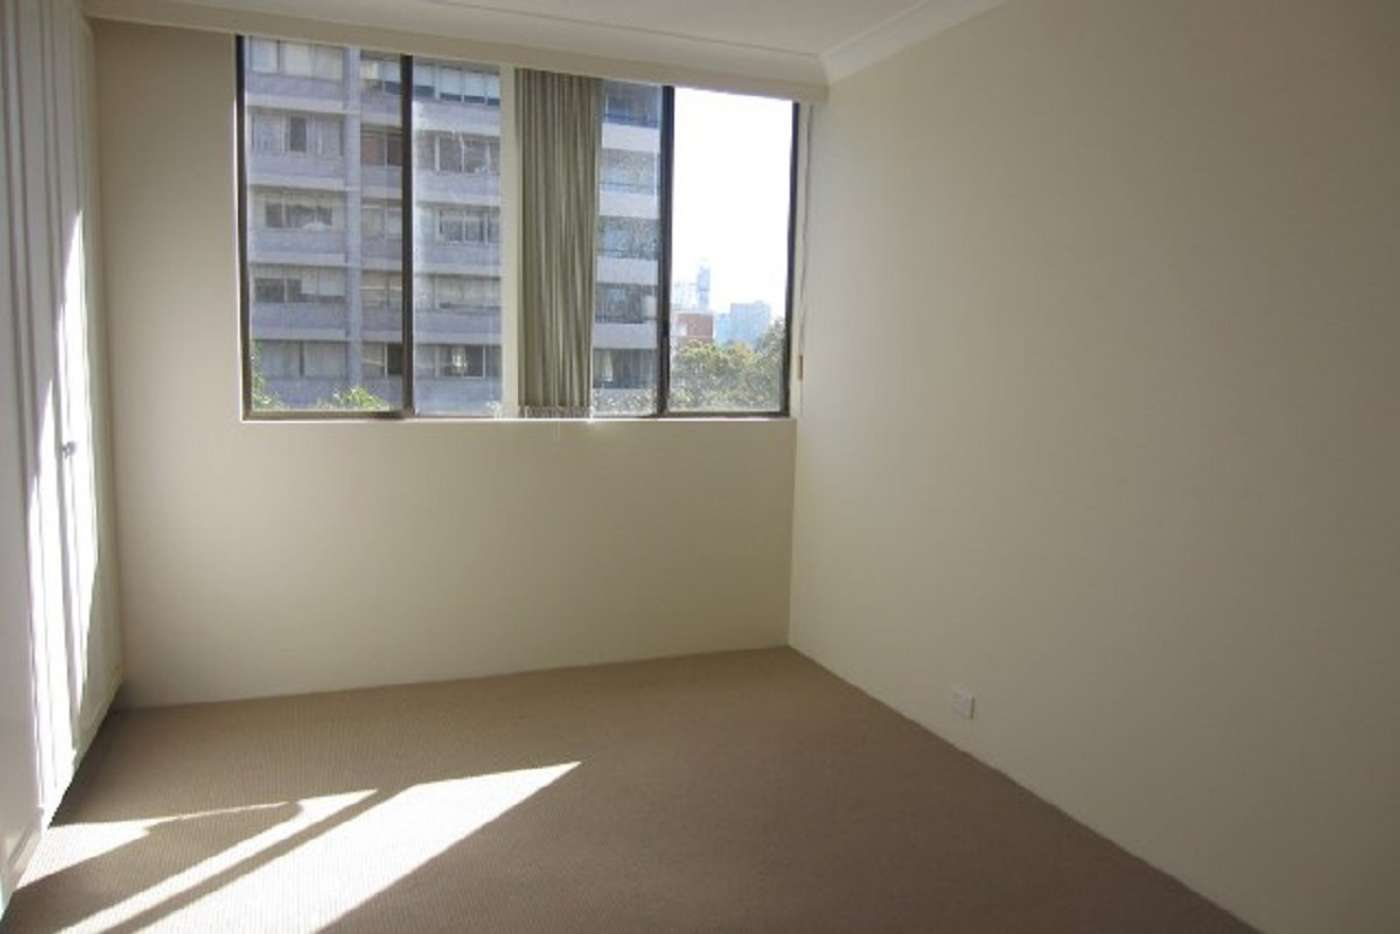 Sixth view of Homely unit listing, 7D/3 Jersey Road, Artarmon NSW 2064